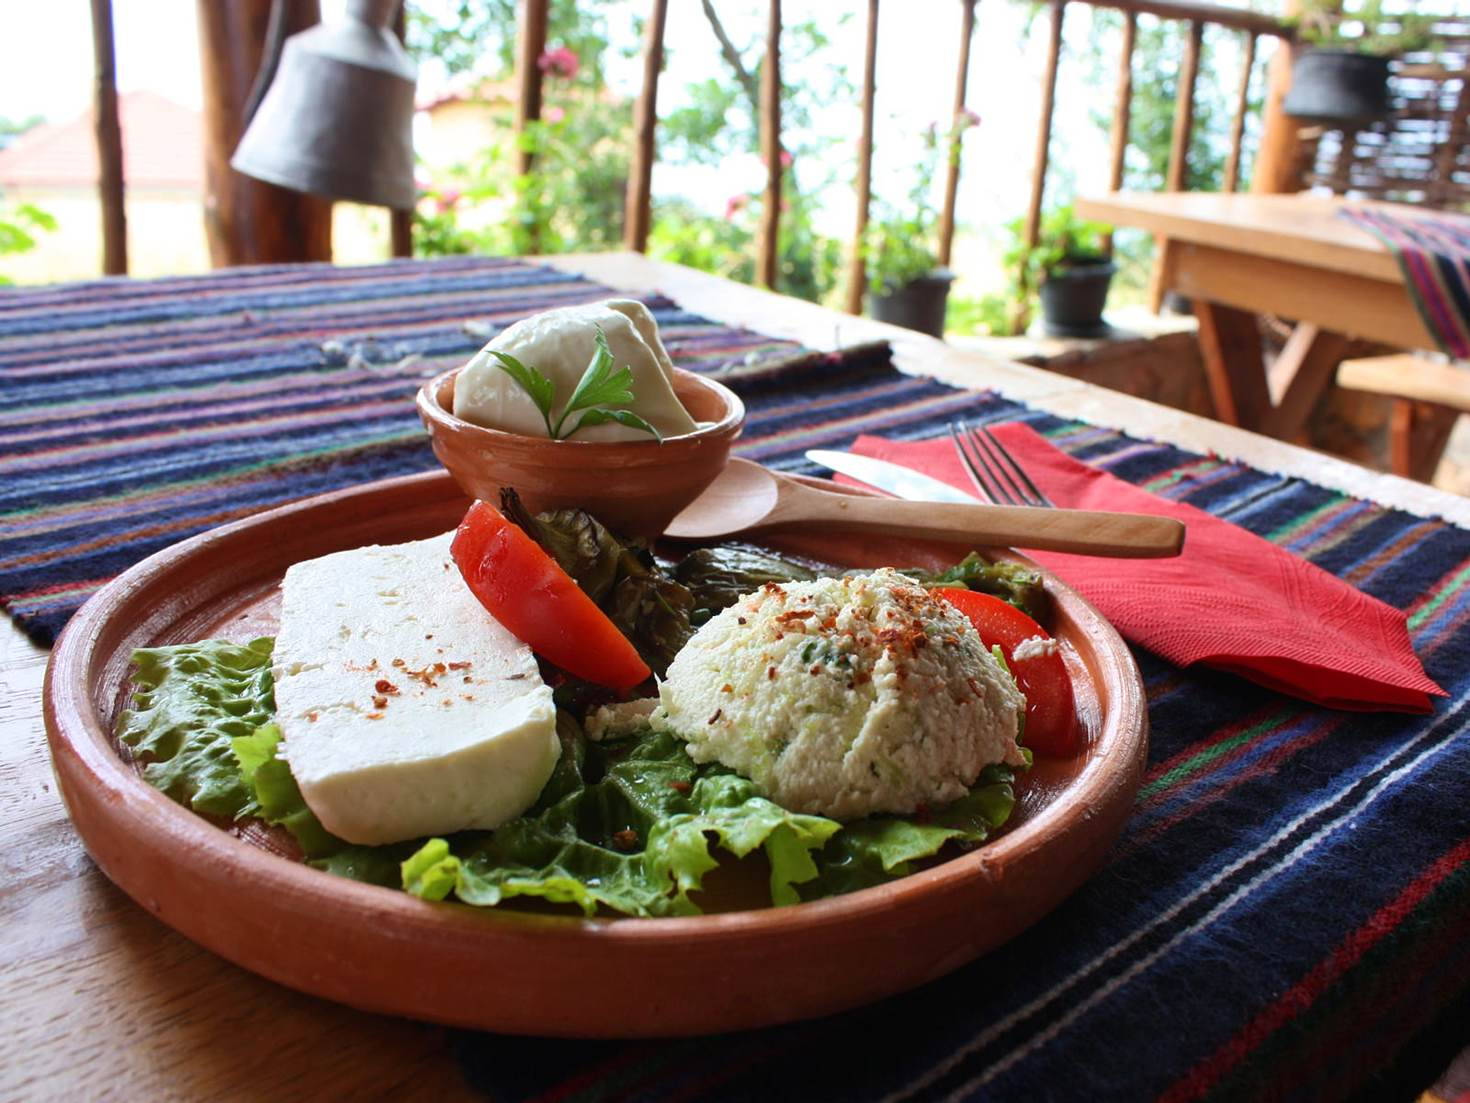 Cheese lunch in Galičica national park © Lorna Parkes / Lonely Planet